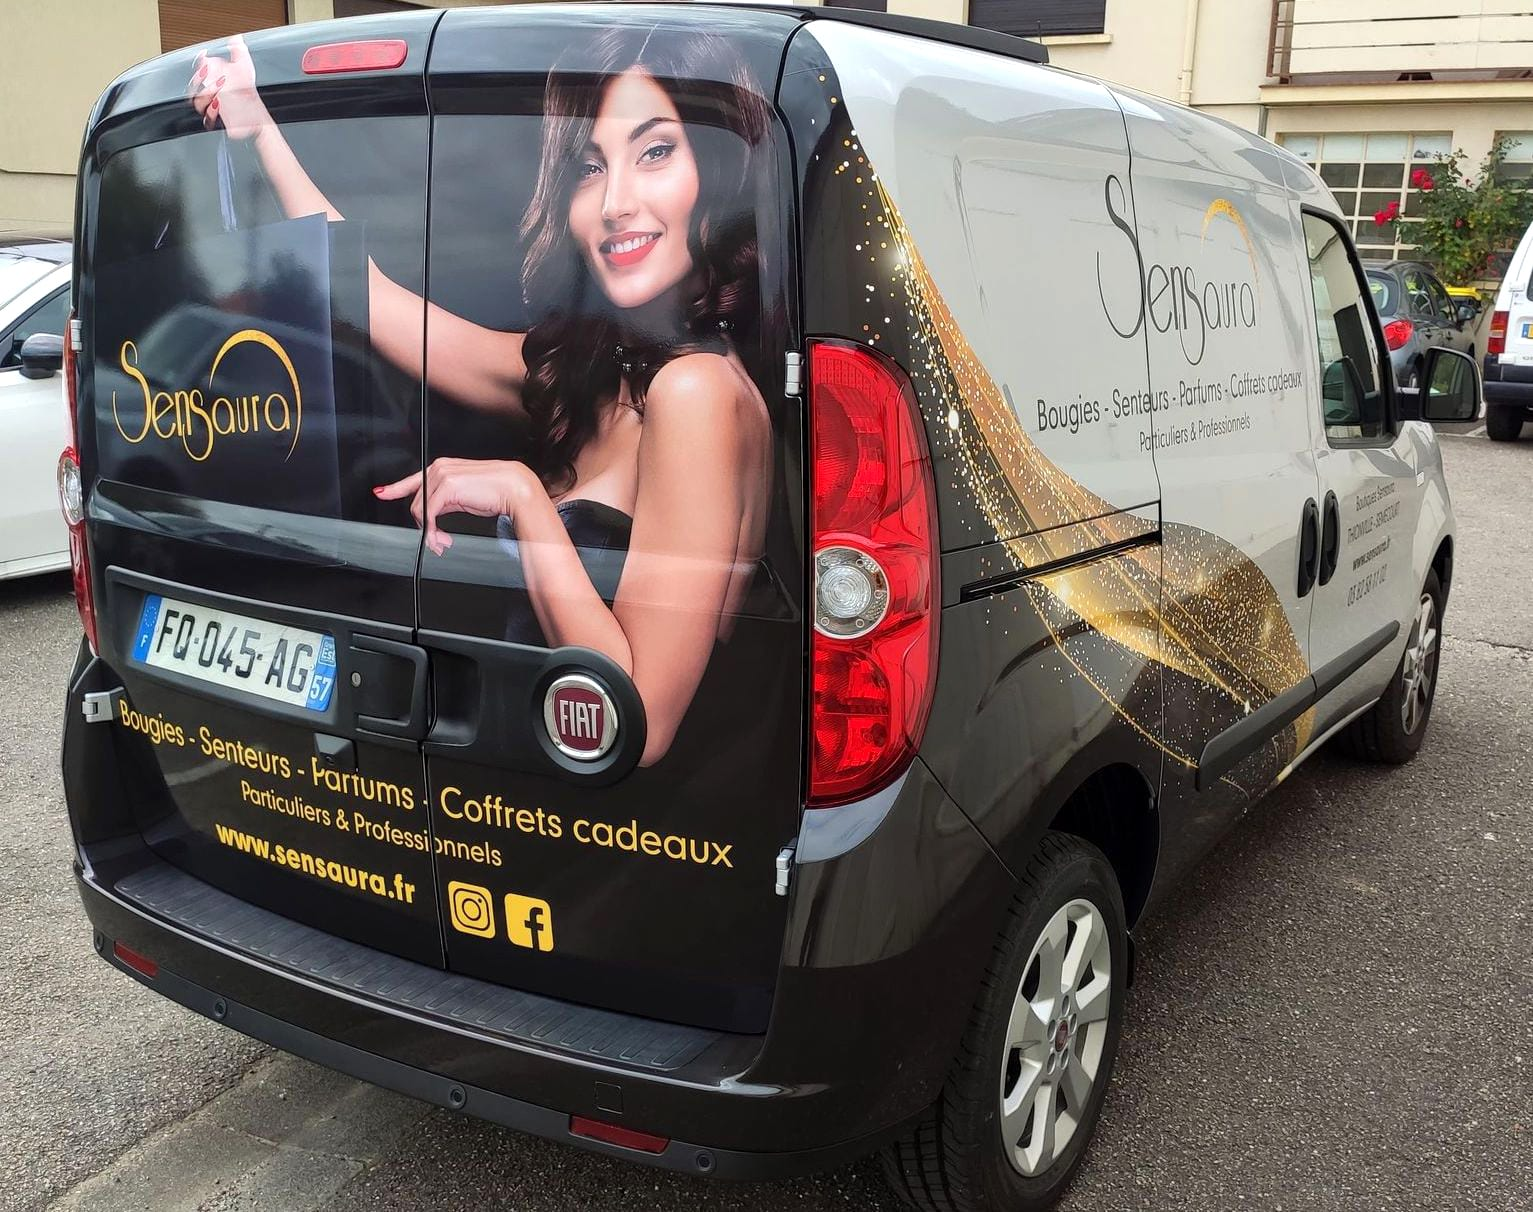 Sensaura-thionville-decoration vehicule sticker covering-marquage-adhesif-logotage-utilitaire-camionnette